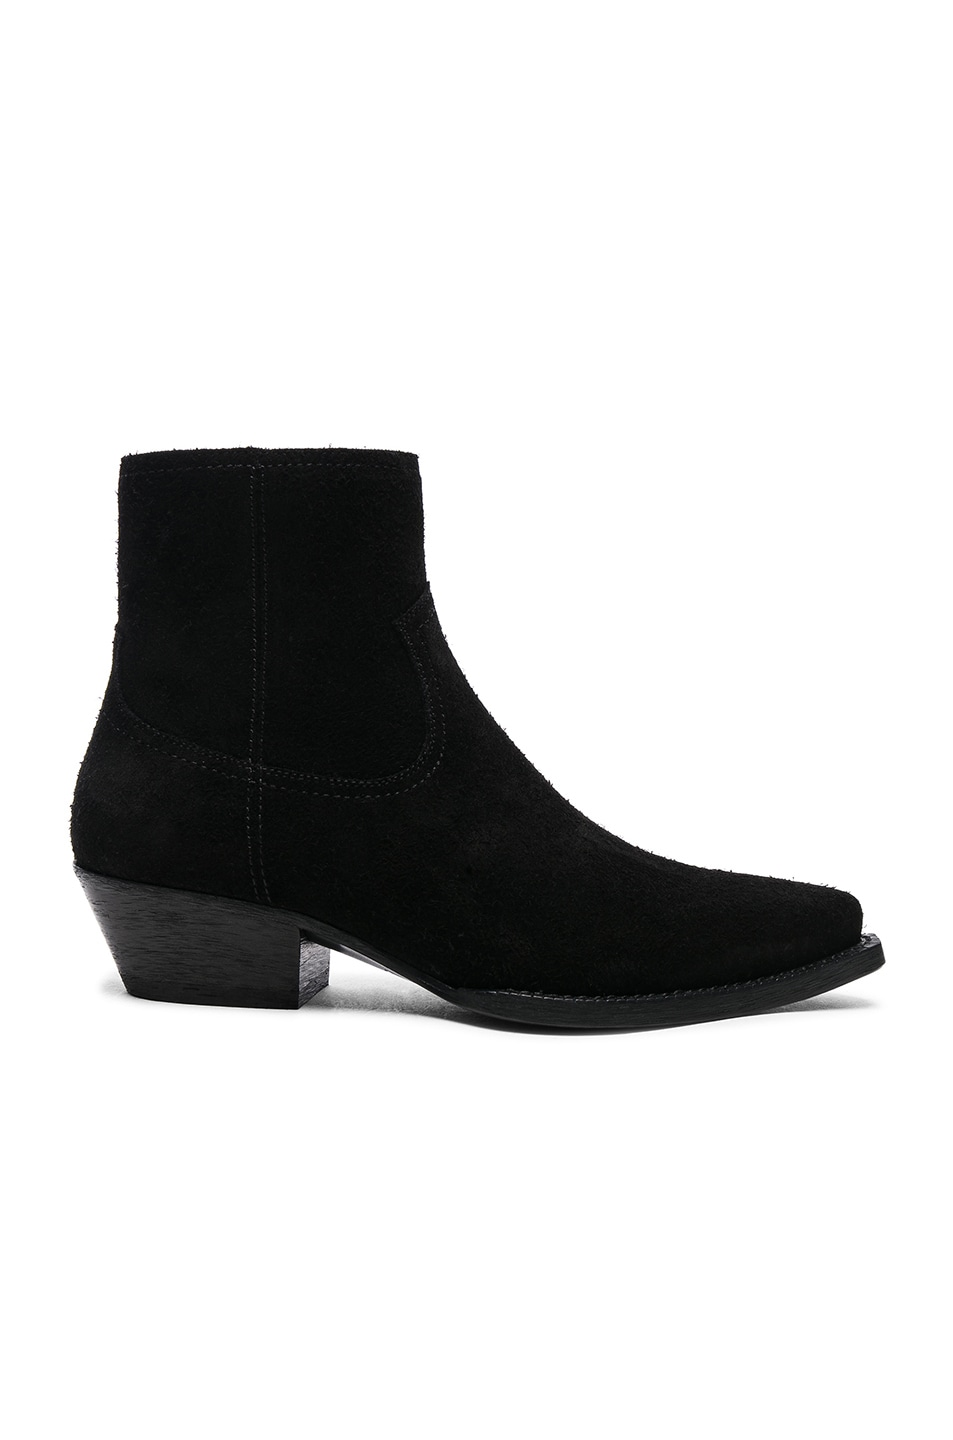 Image 1 of Saint Laurent Suede Lukas Western Boots in Black